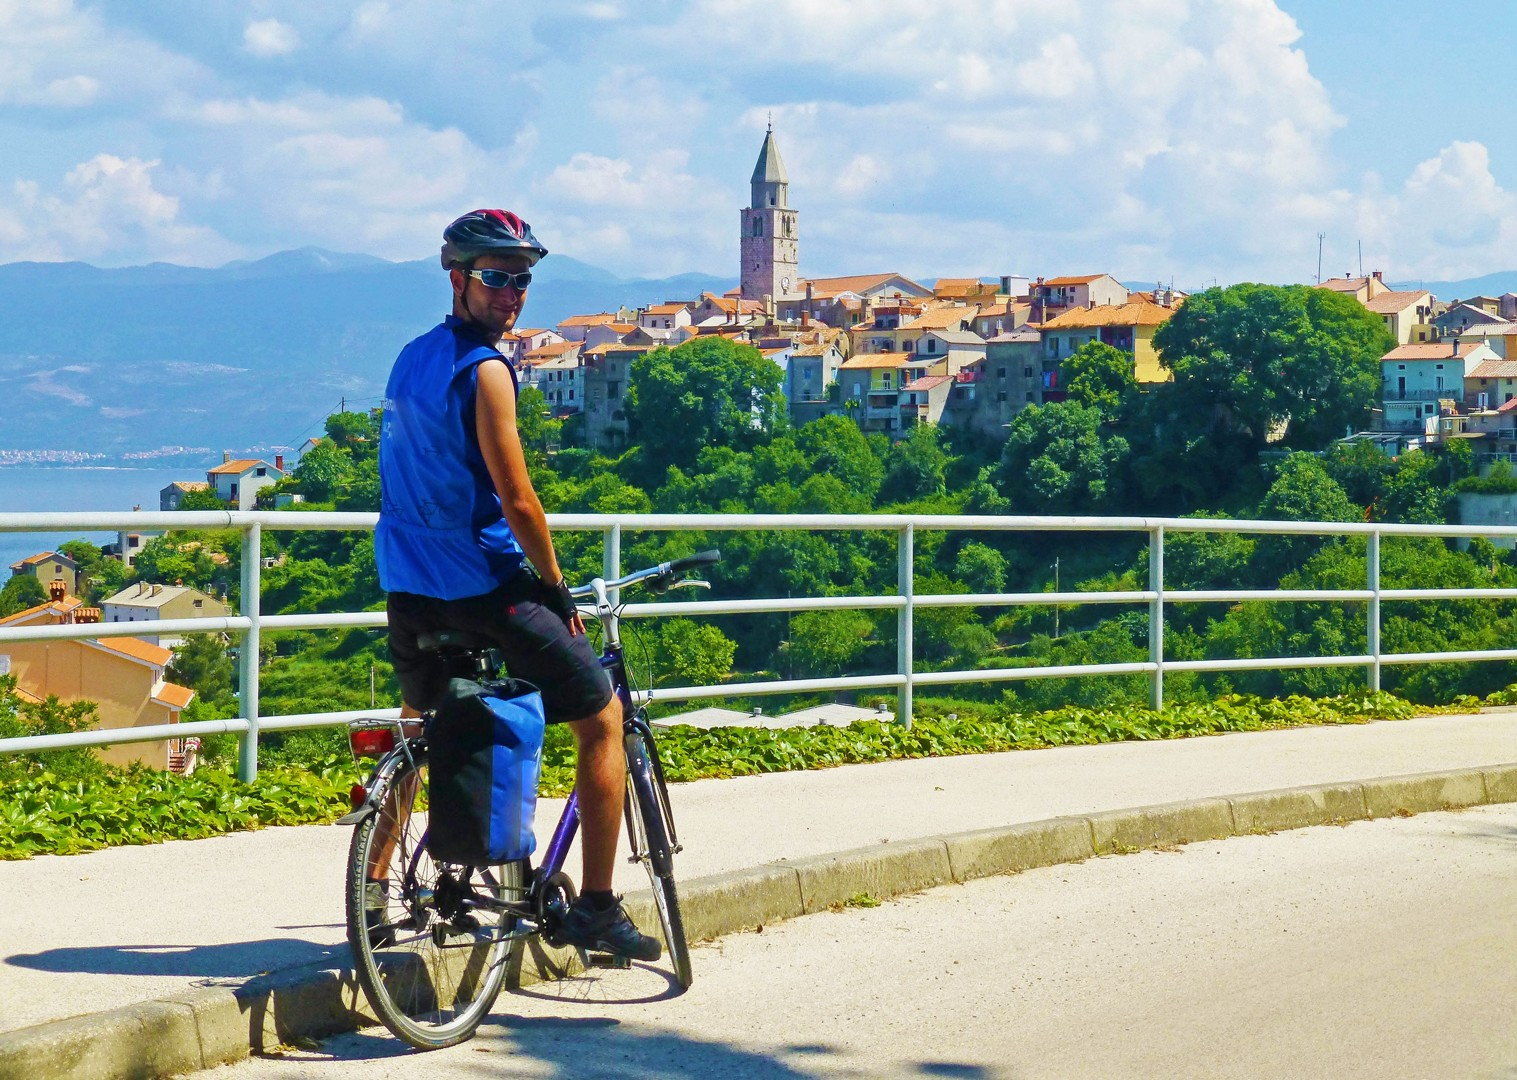 culture-croatia-stunning-views-leisure-bike.jpg - NEW! Croatia - Kvarner Bay Plus - Leisure Cycling